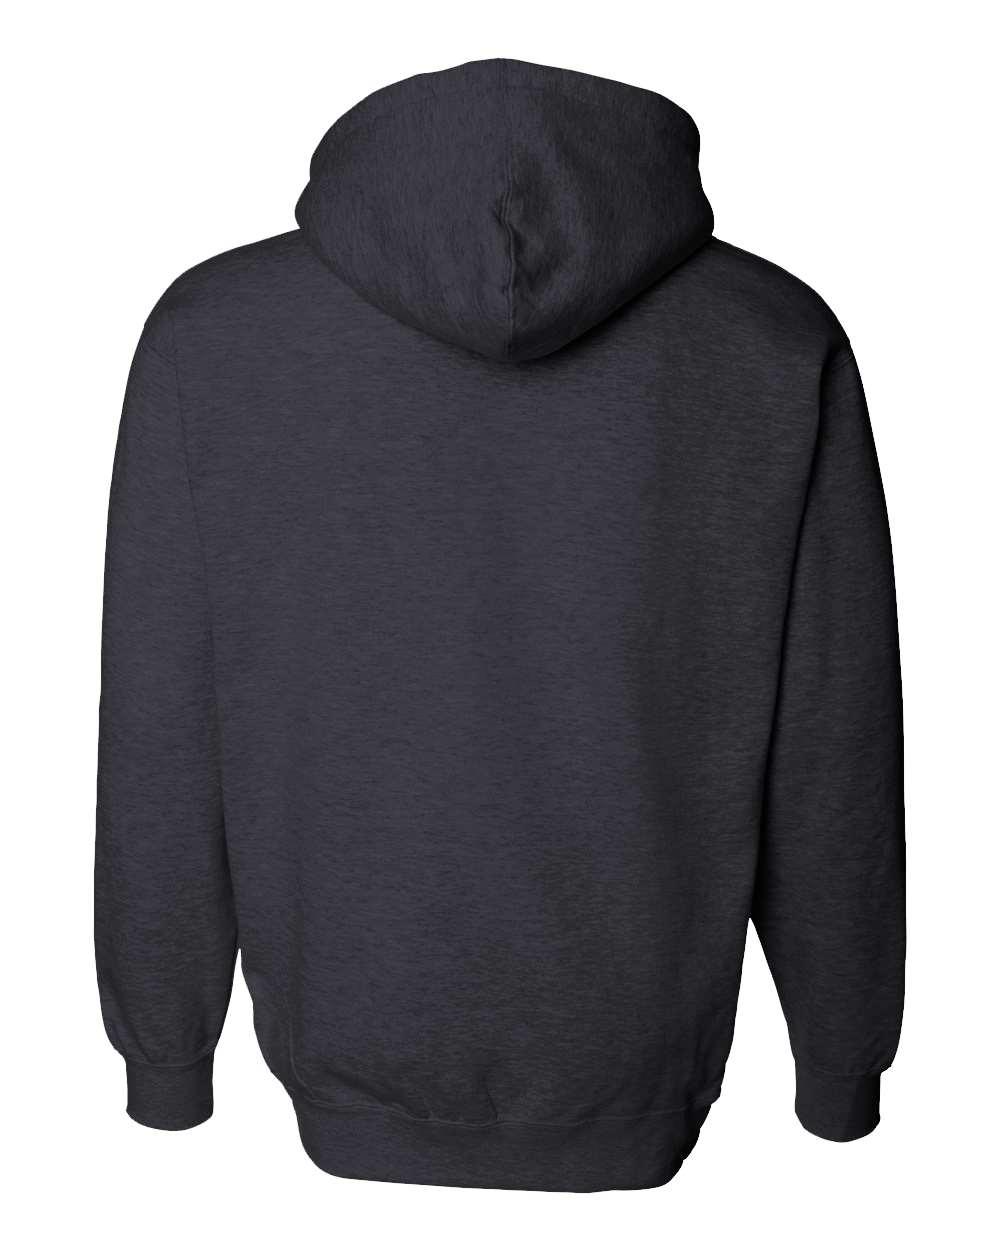 Independent-Trading-Co-Mens-Hooded-Pullover-Sweatshirt-IND4000-up-to-3XL miniature 28